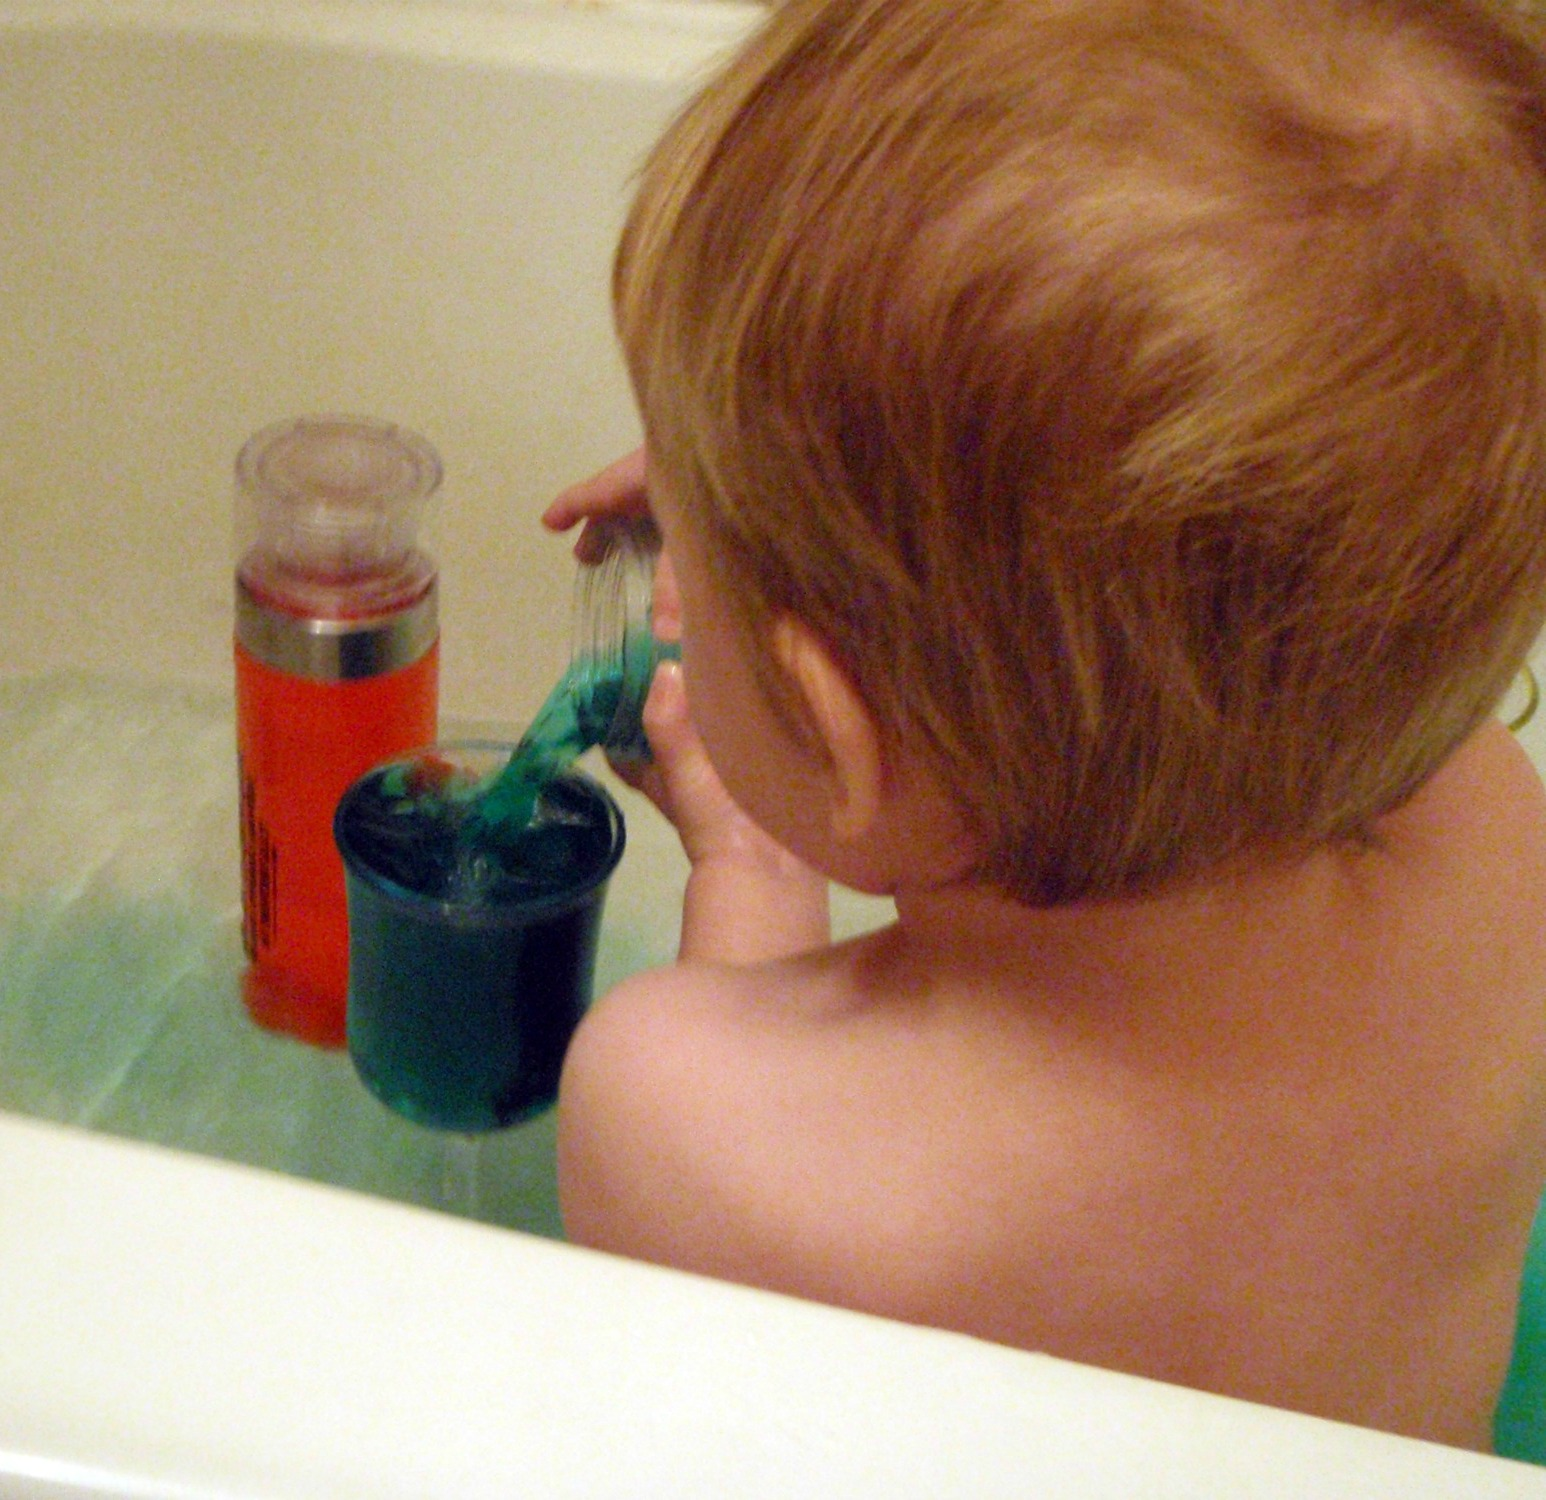 Food Coloring + Bath = Awesome